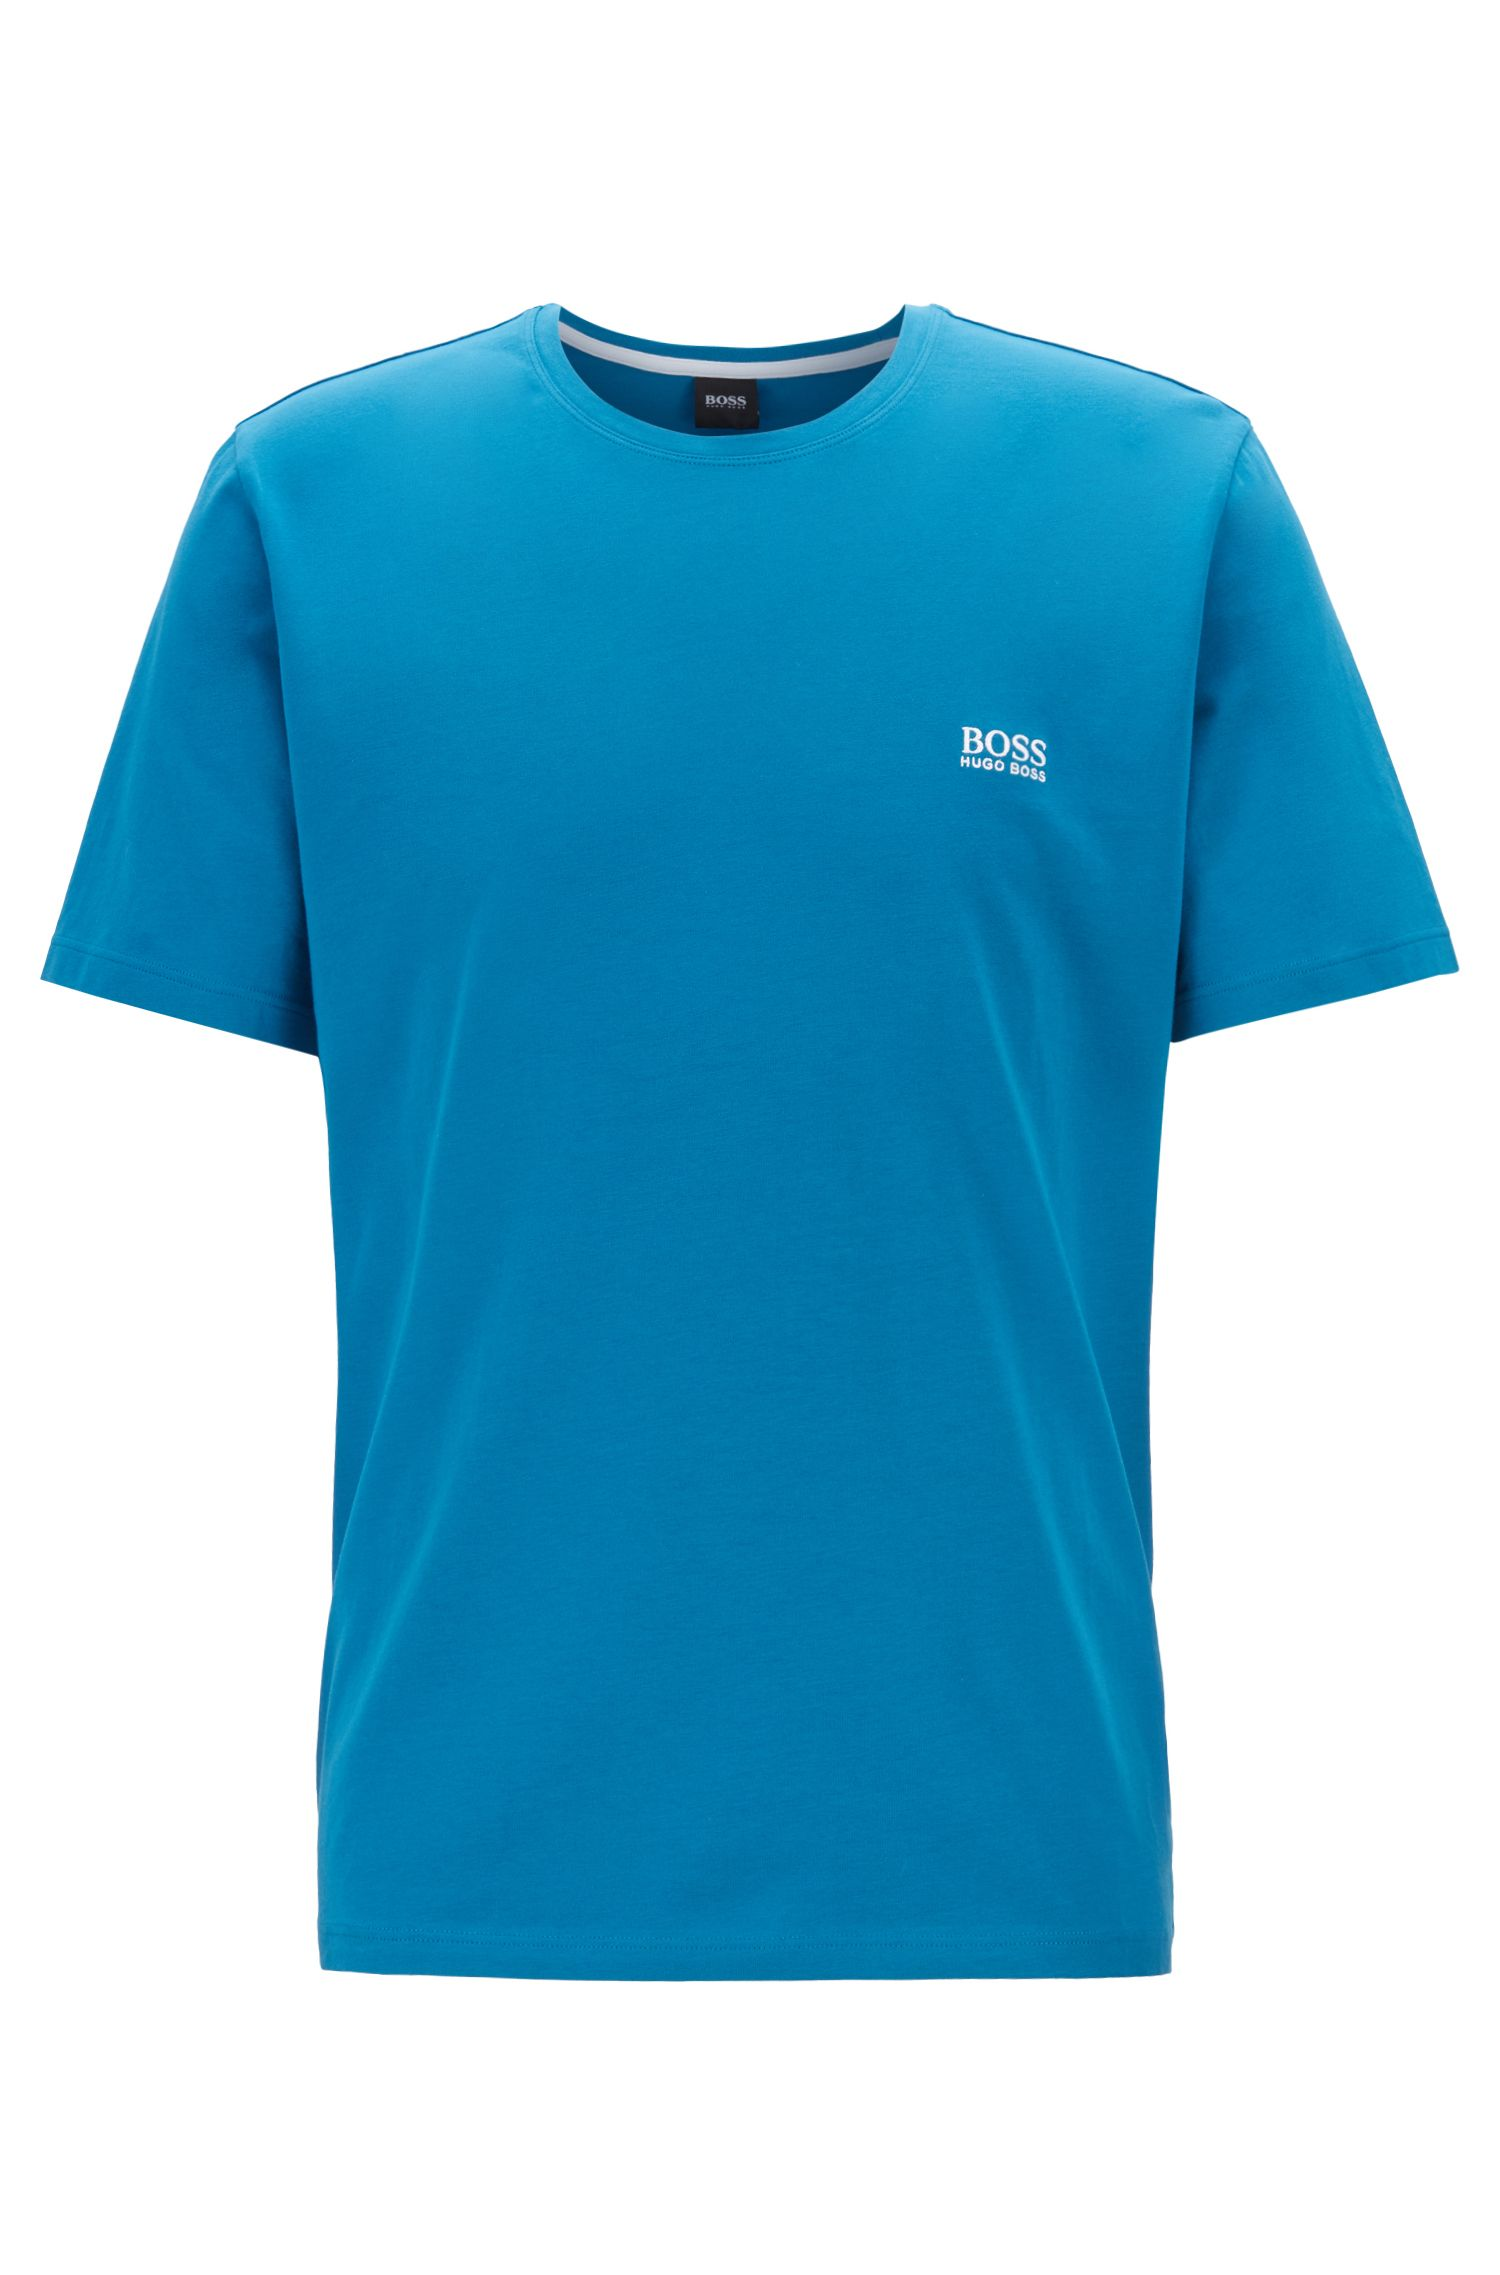 Loungewear T-shirt in stretch cotton, Turquoise